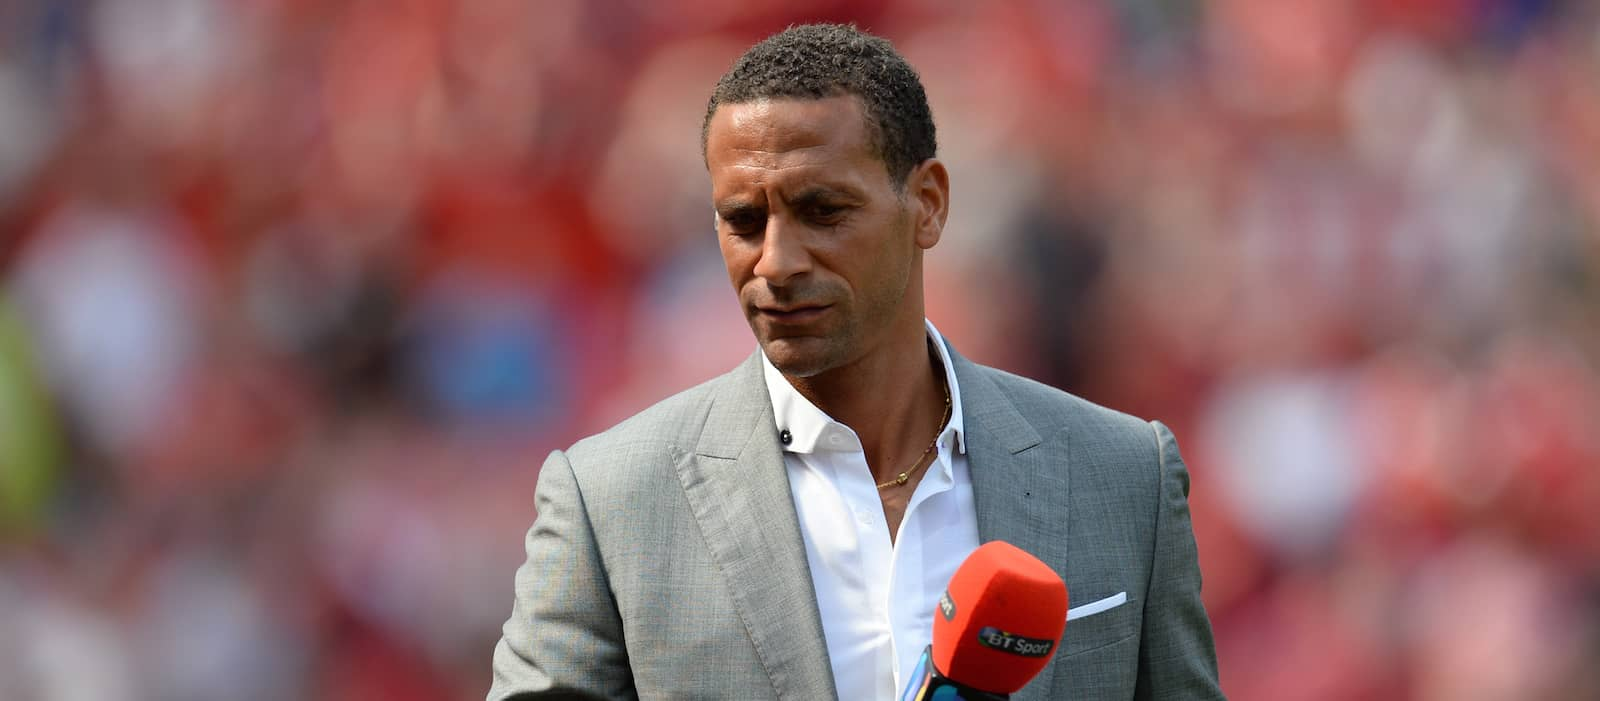 Rio Ferdinand attacks Louis van Gaal for selling Danny Welbeck and Javier Hernandez